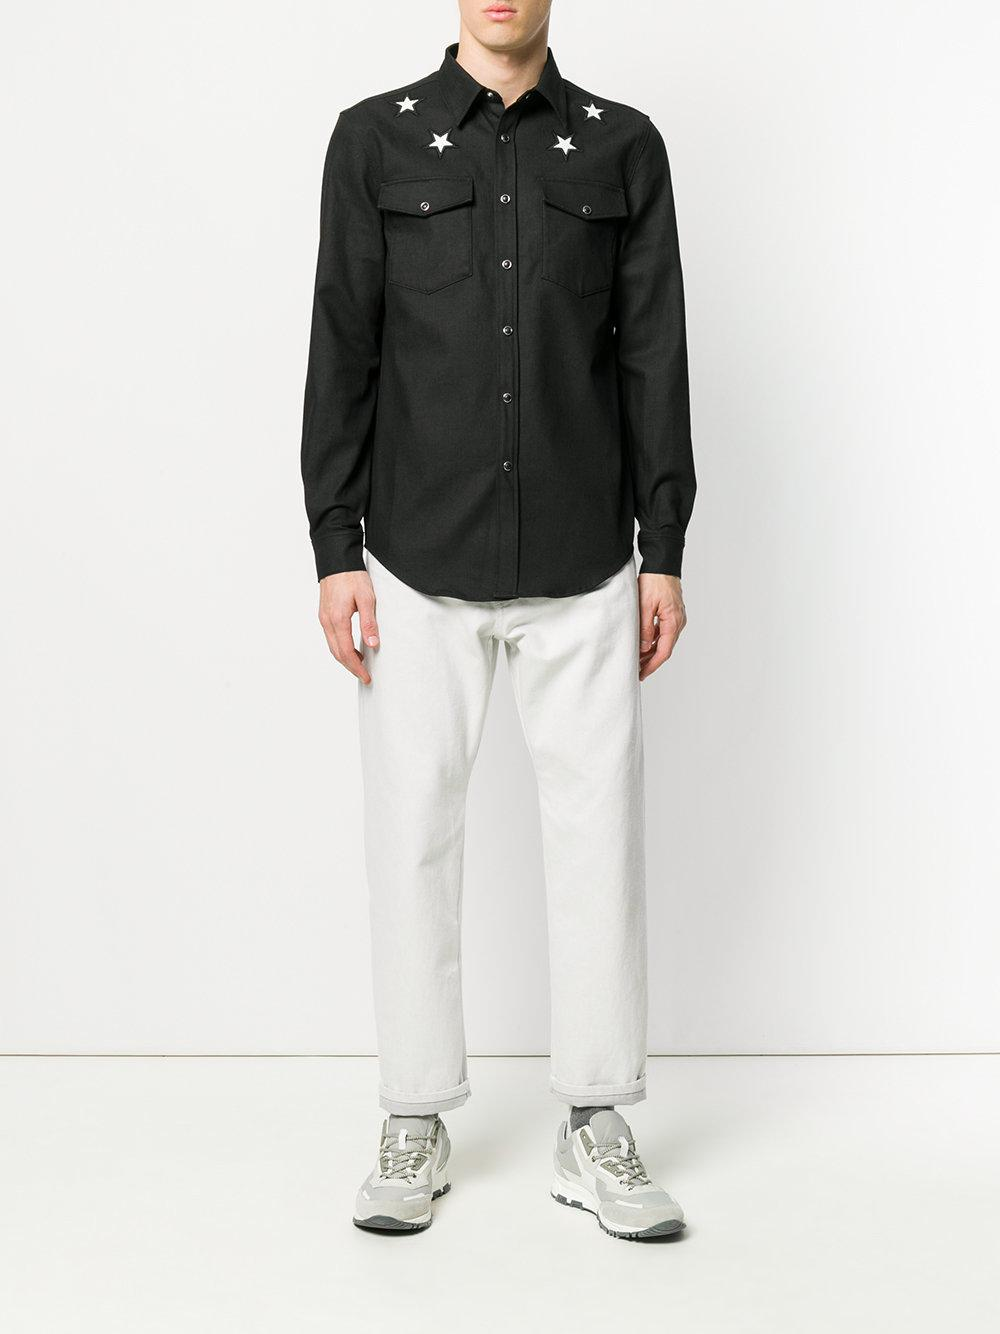 Lyst givenchy star patch shirt in black for men for Givenchy 5 star shirt